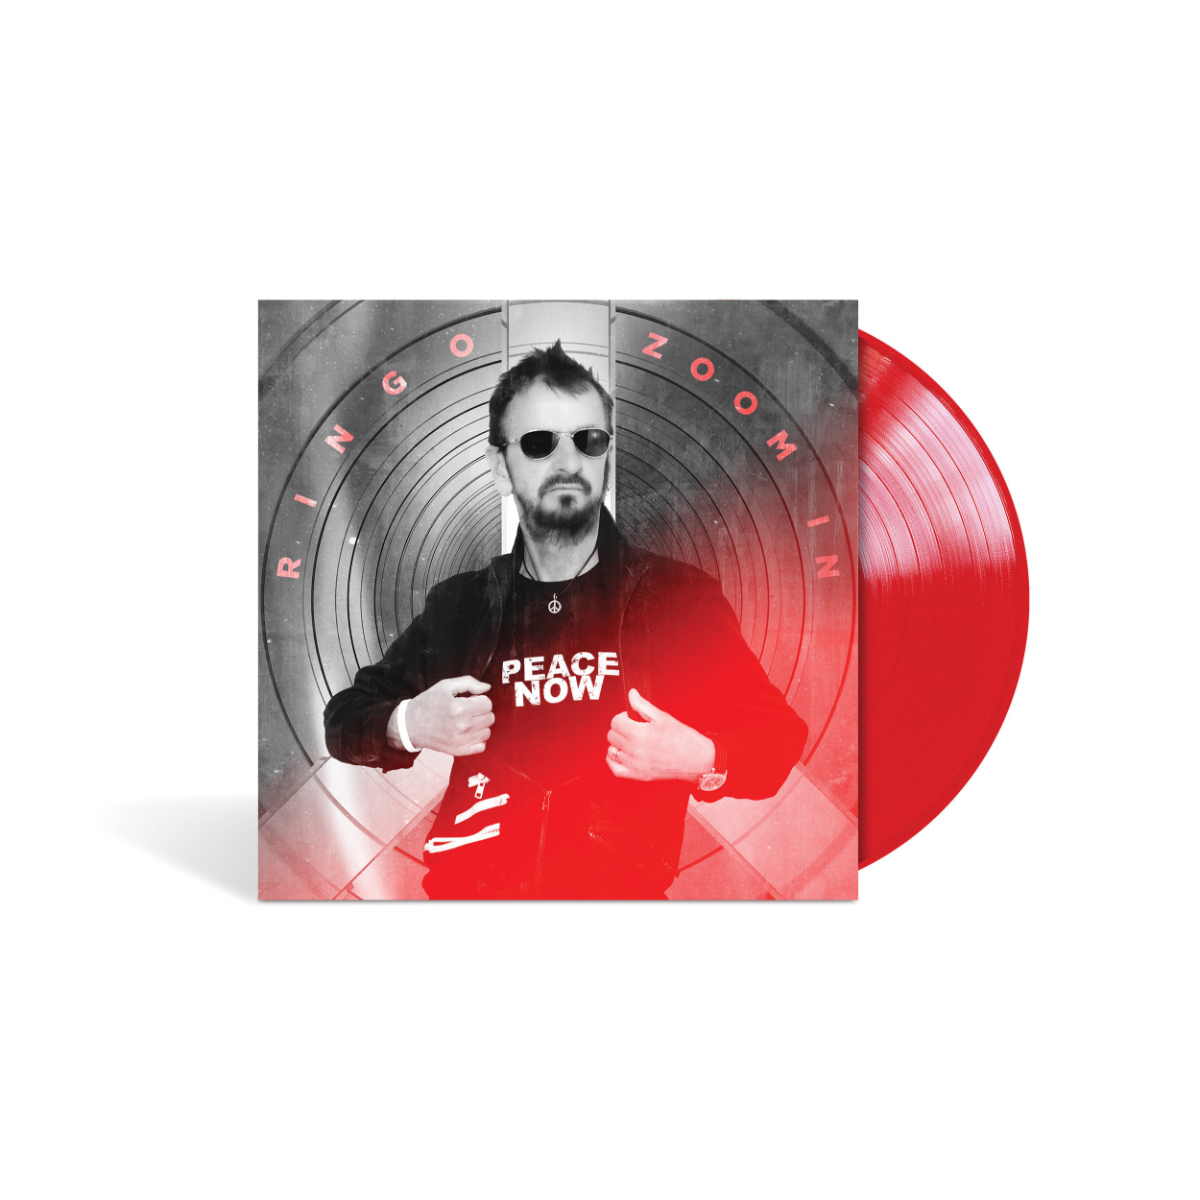 Ringo Starr - Zoom In Red LP